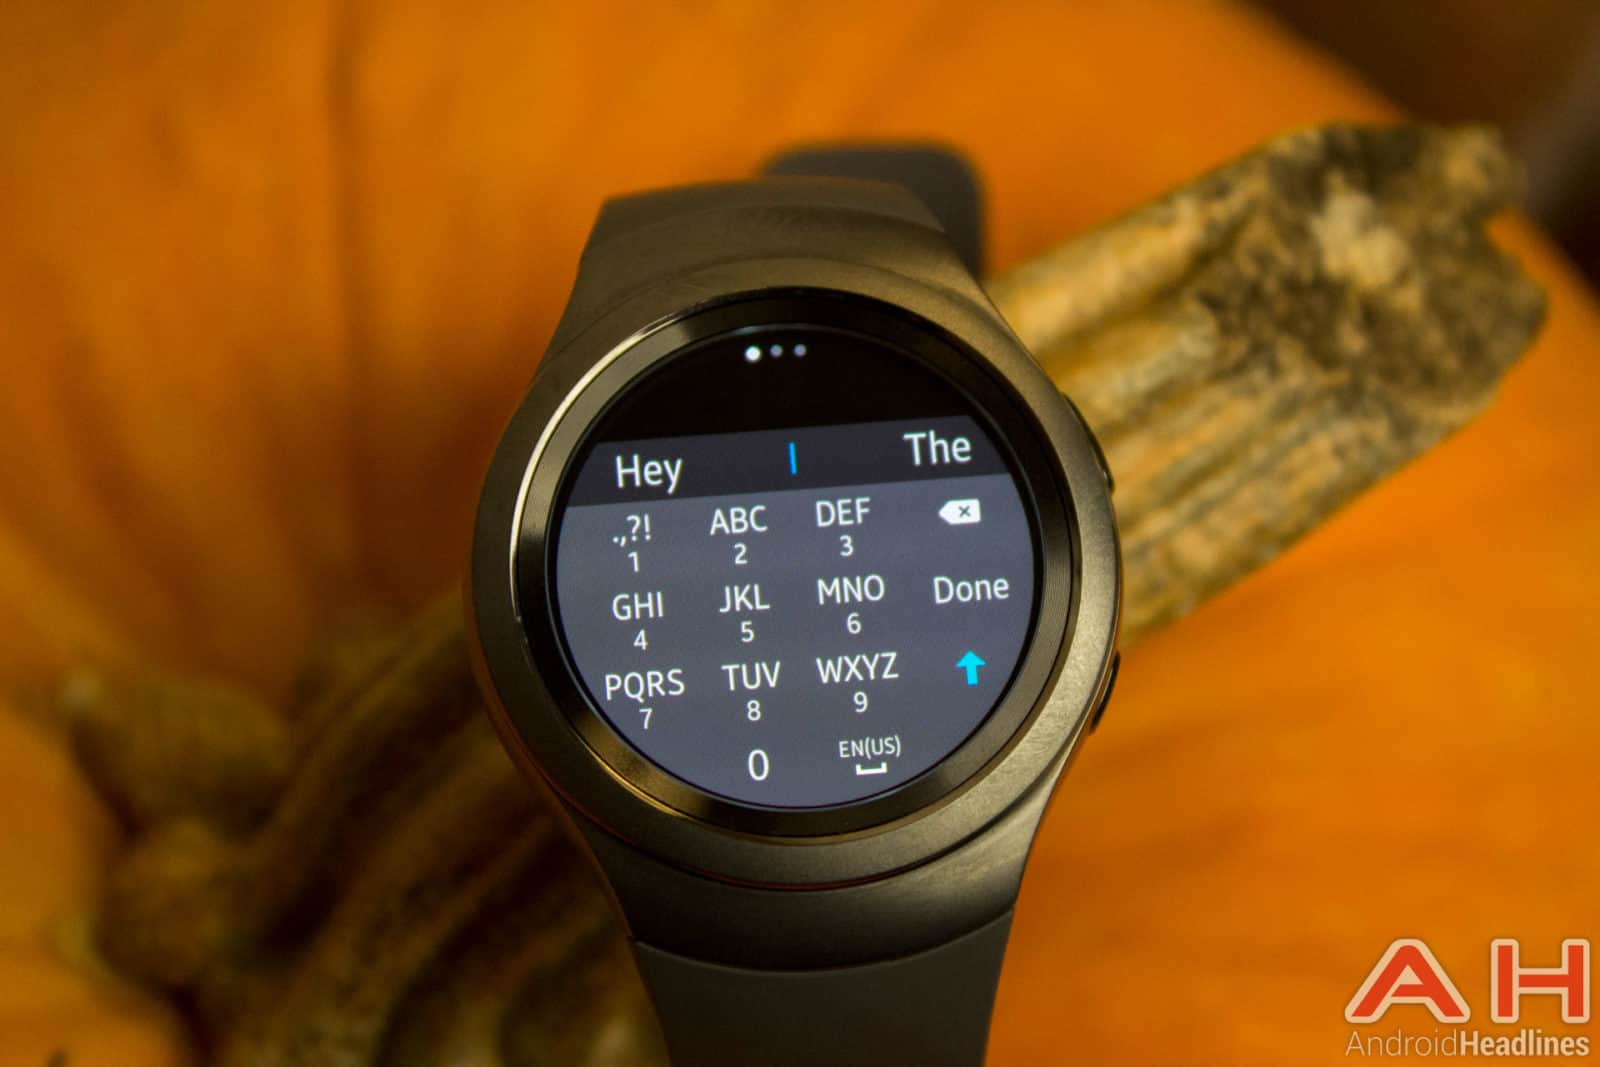 Samsung-Gear-S2-AH-message-7